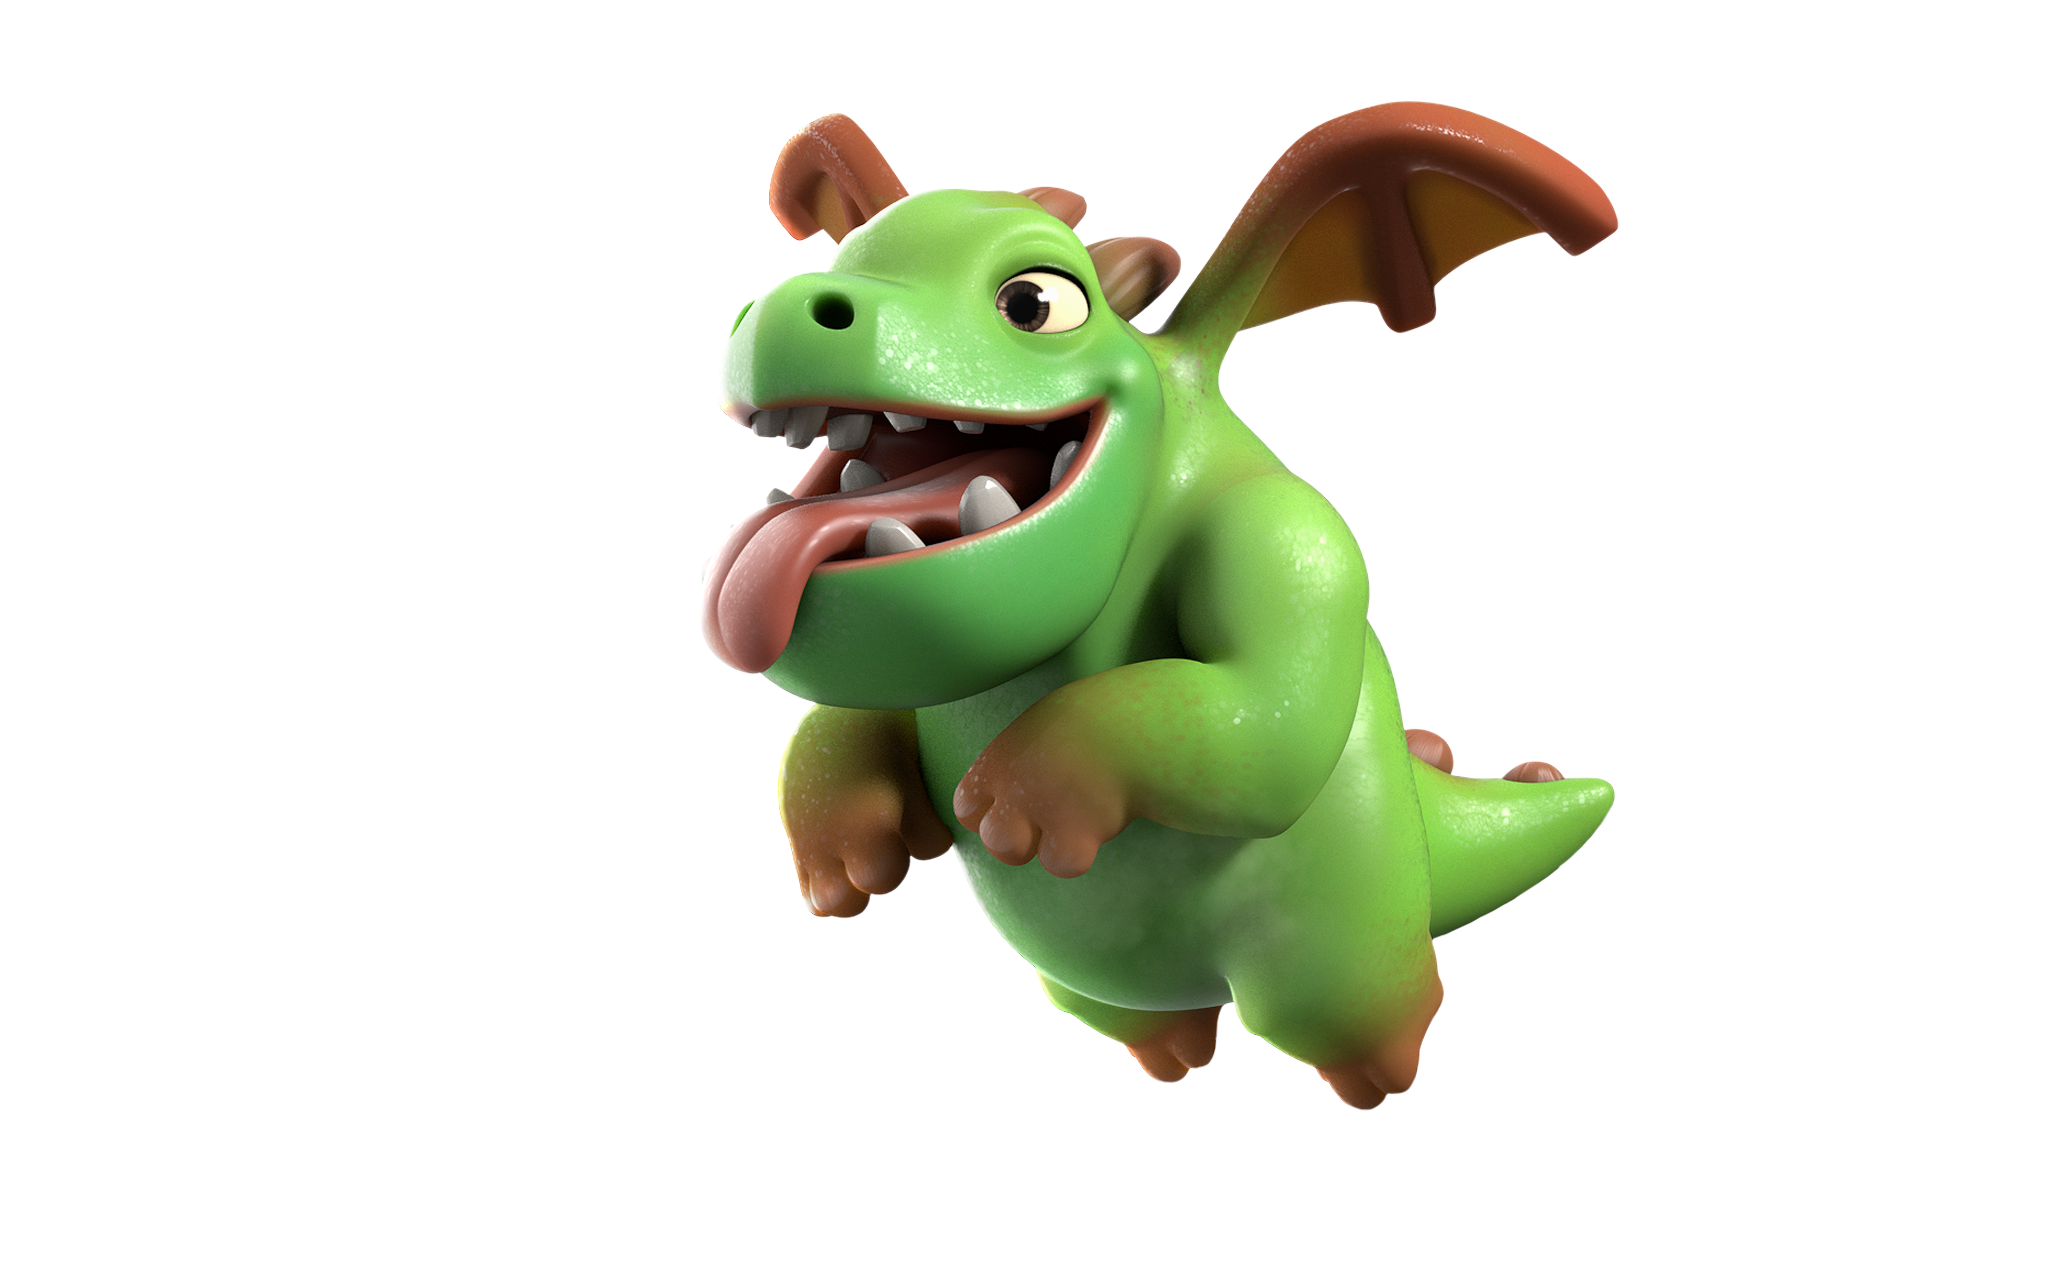 Goblin clash png. Baby d royale of